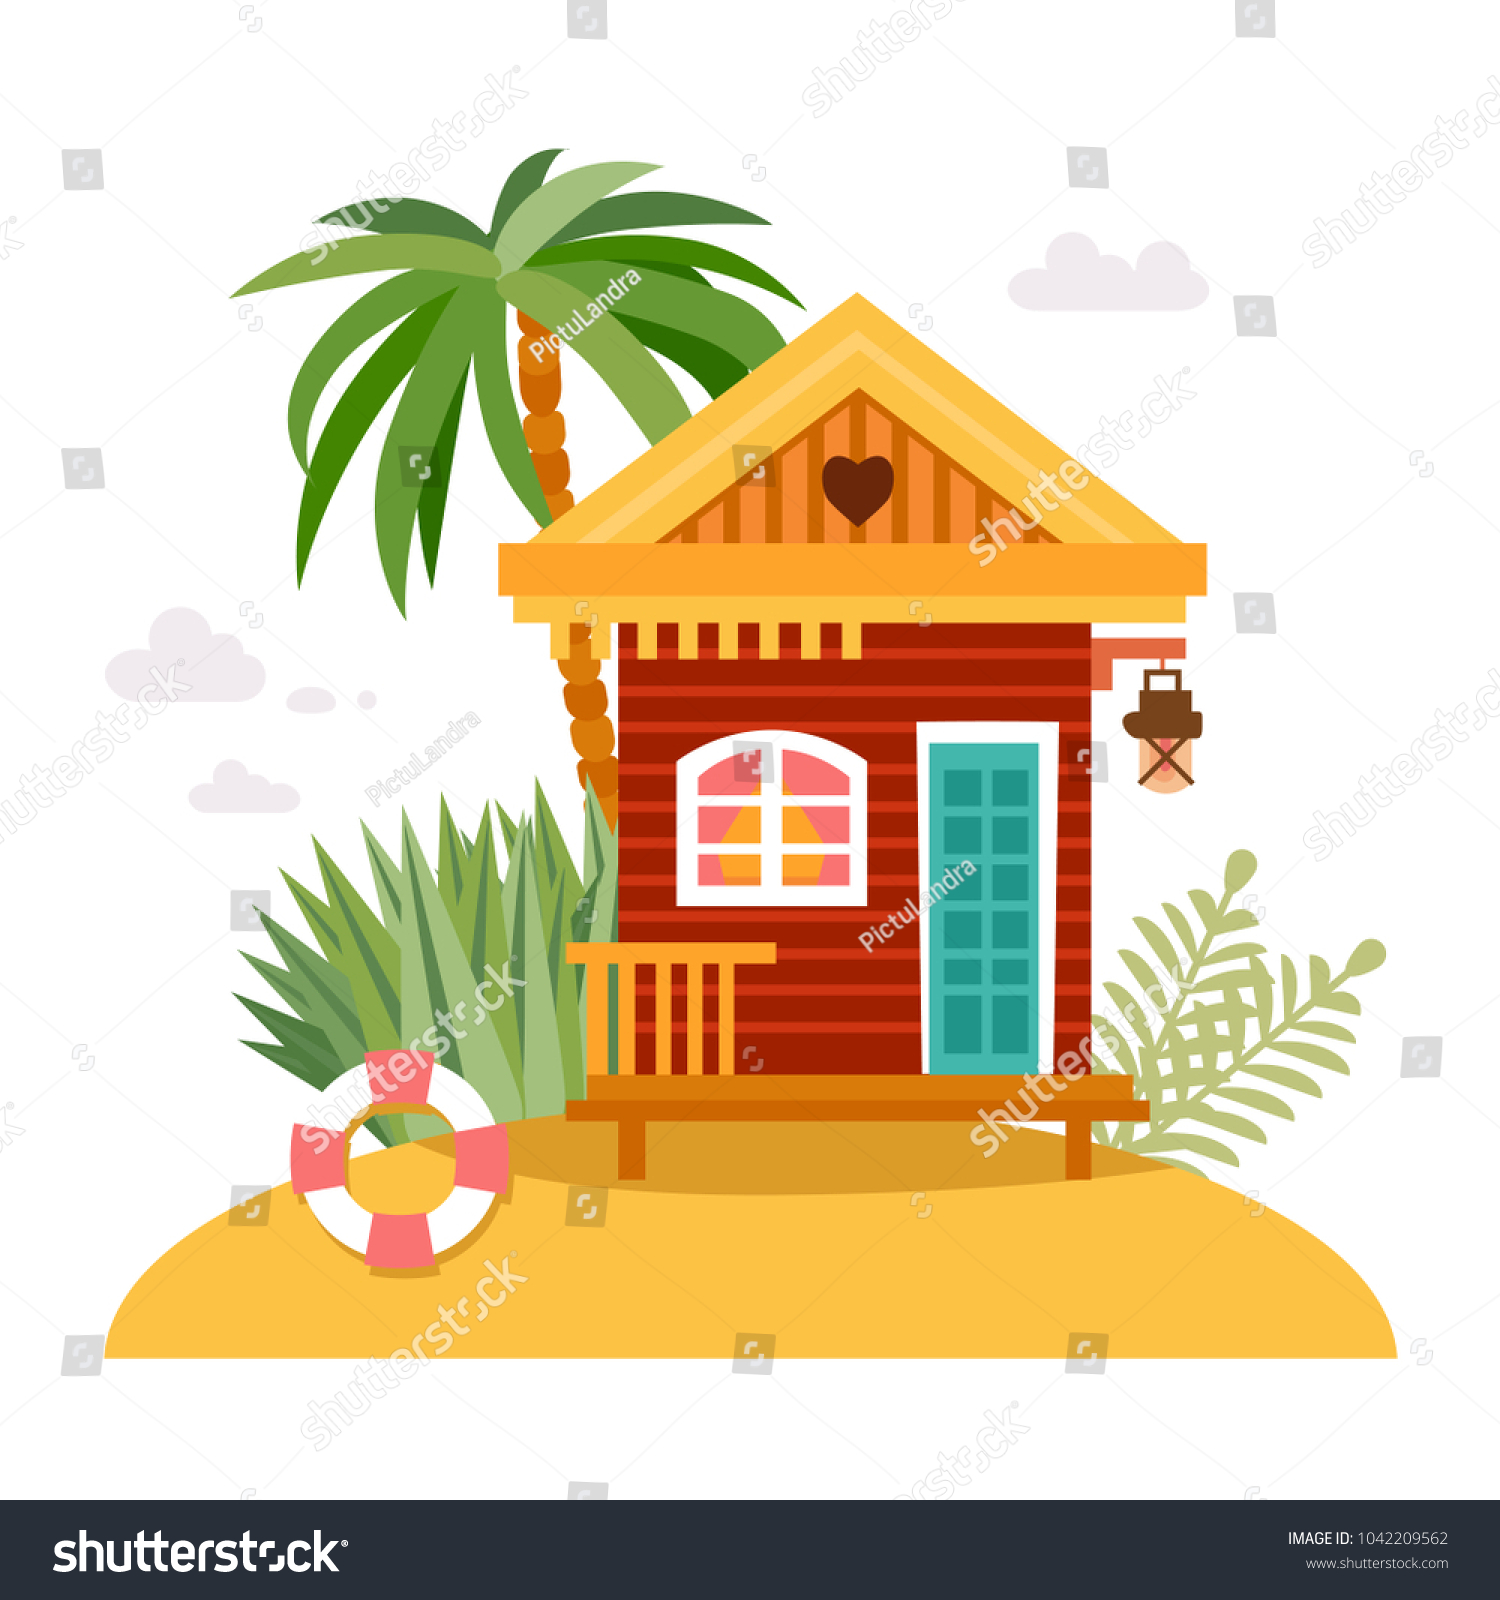 Cartoon Straw Huts Bungalow For Tropical Hotels On Island In Flat